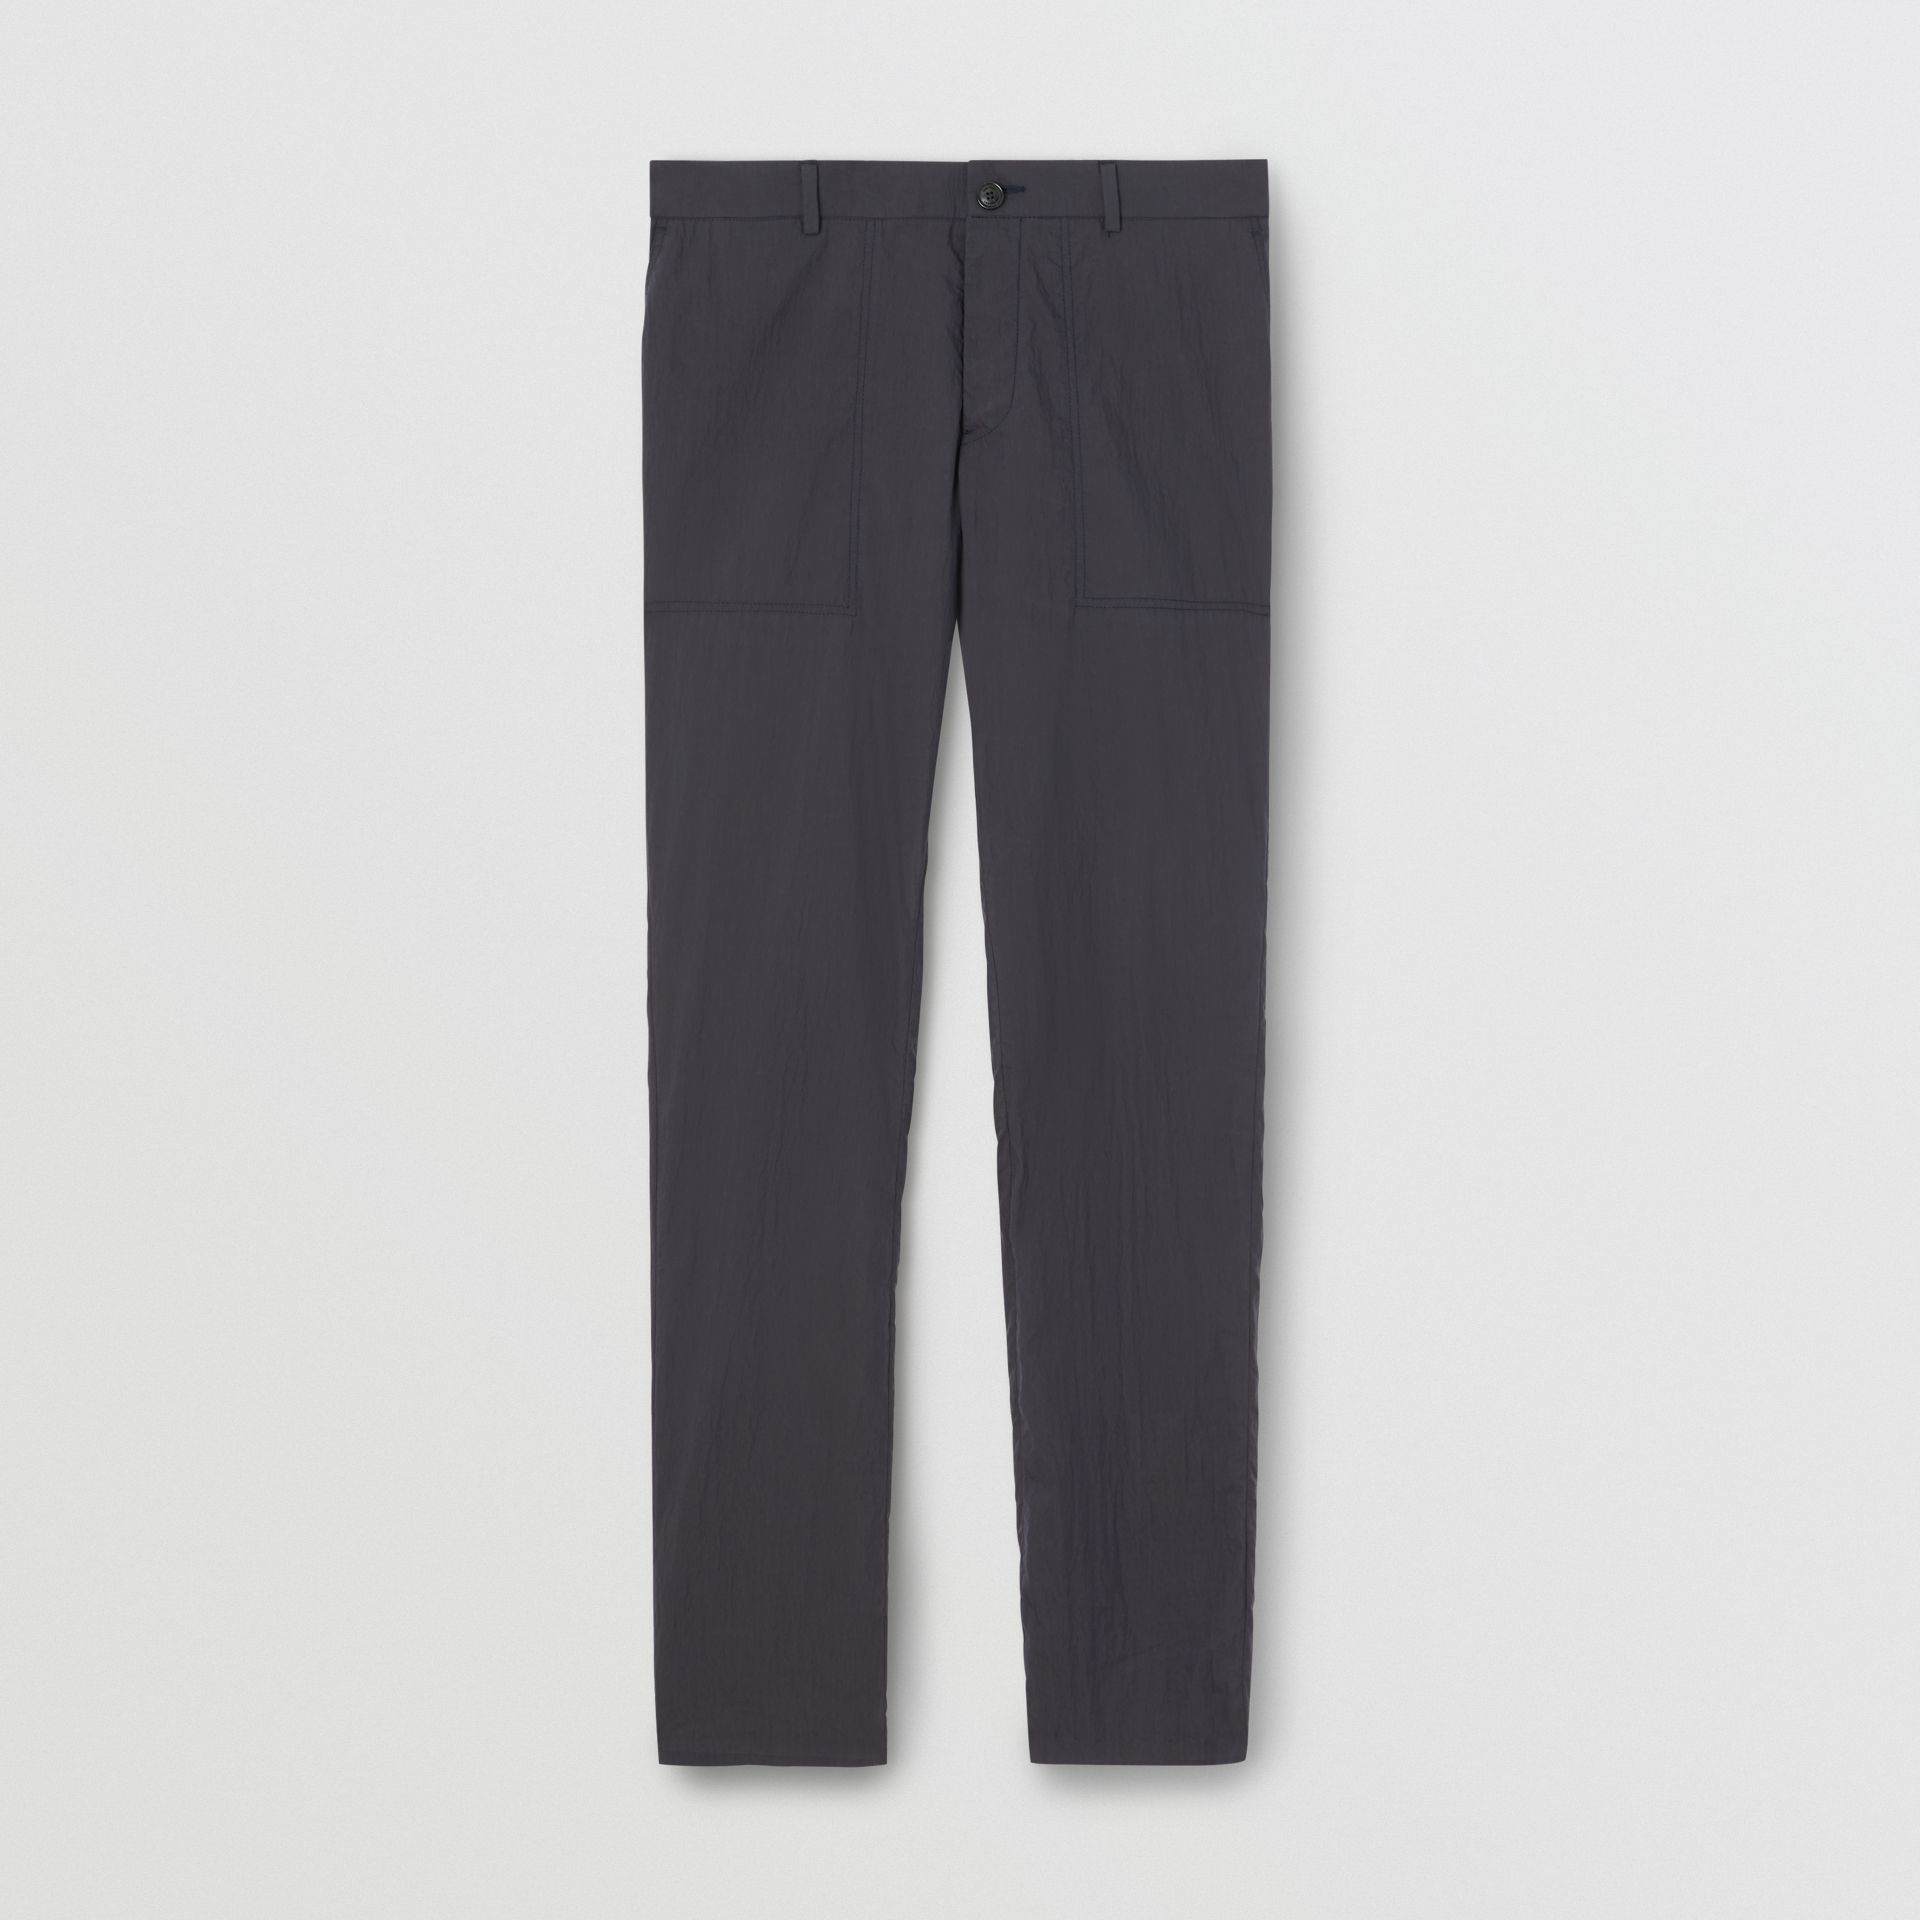 Classic Fit Cotton Blend Tailored Trousers in Navy - Men | Burberry - gallery image 3